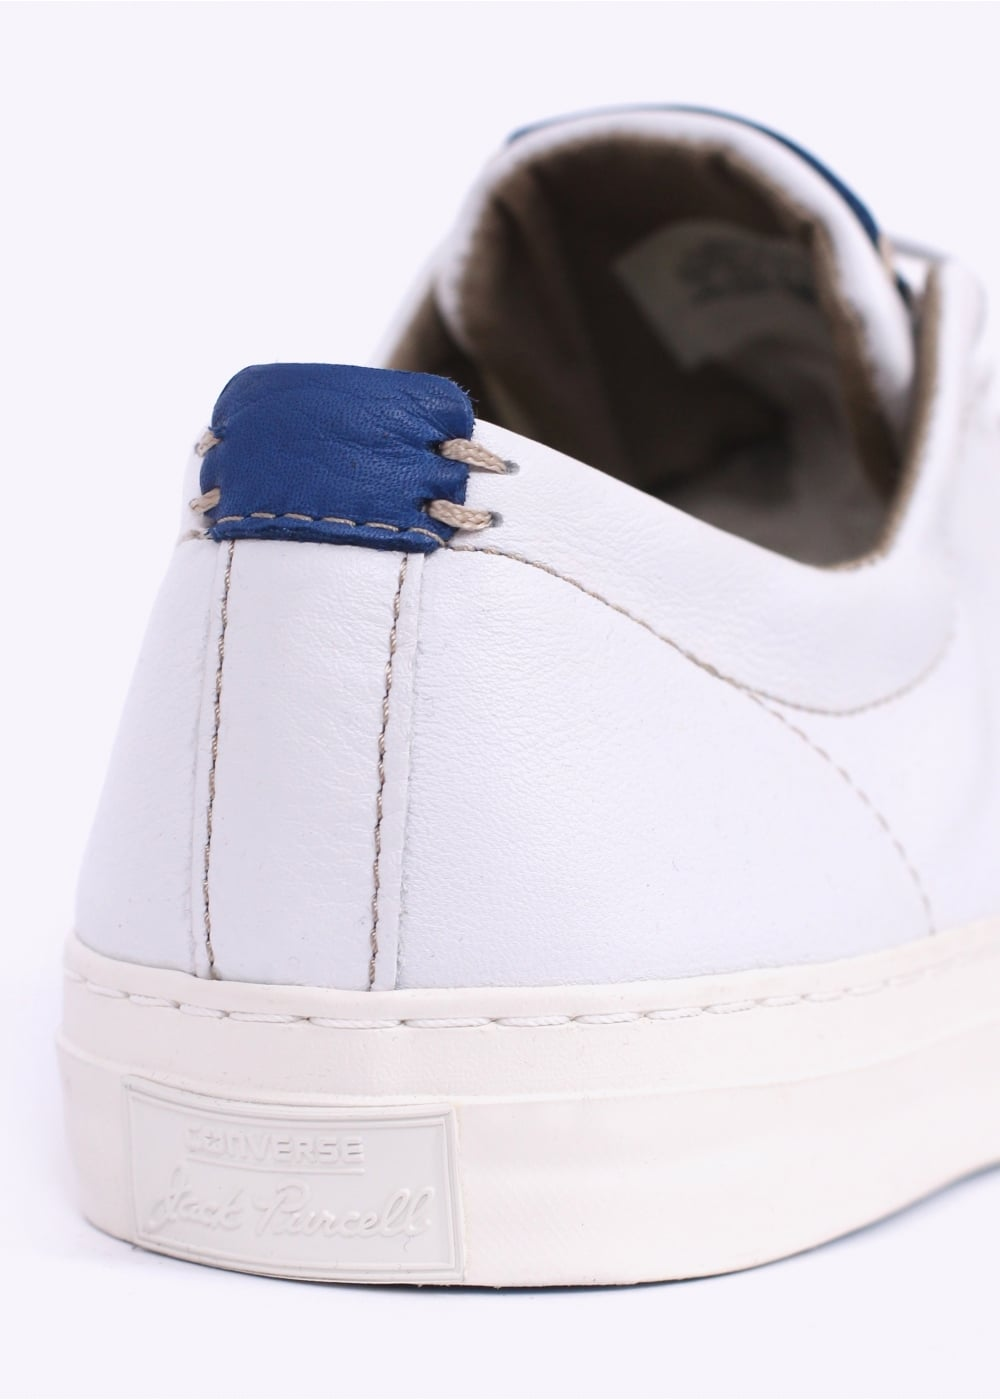 1a8b6af6806101 Converse Jack Purcell Ox Tumbled Leather - White   Egret